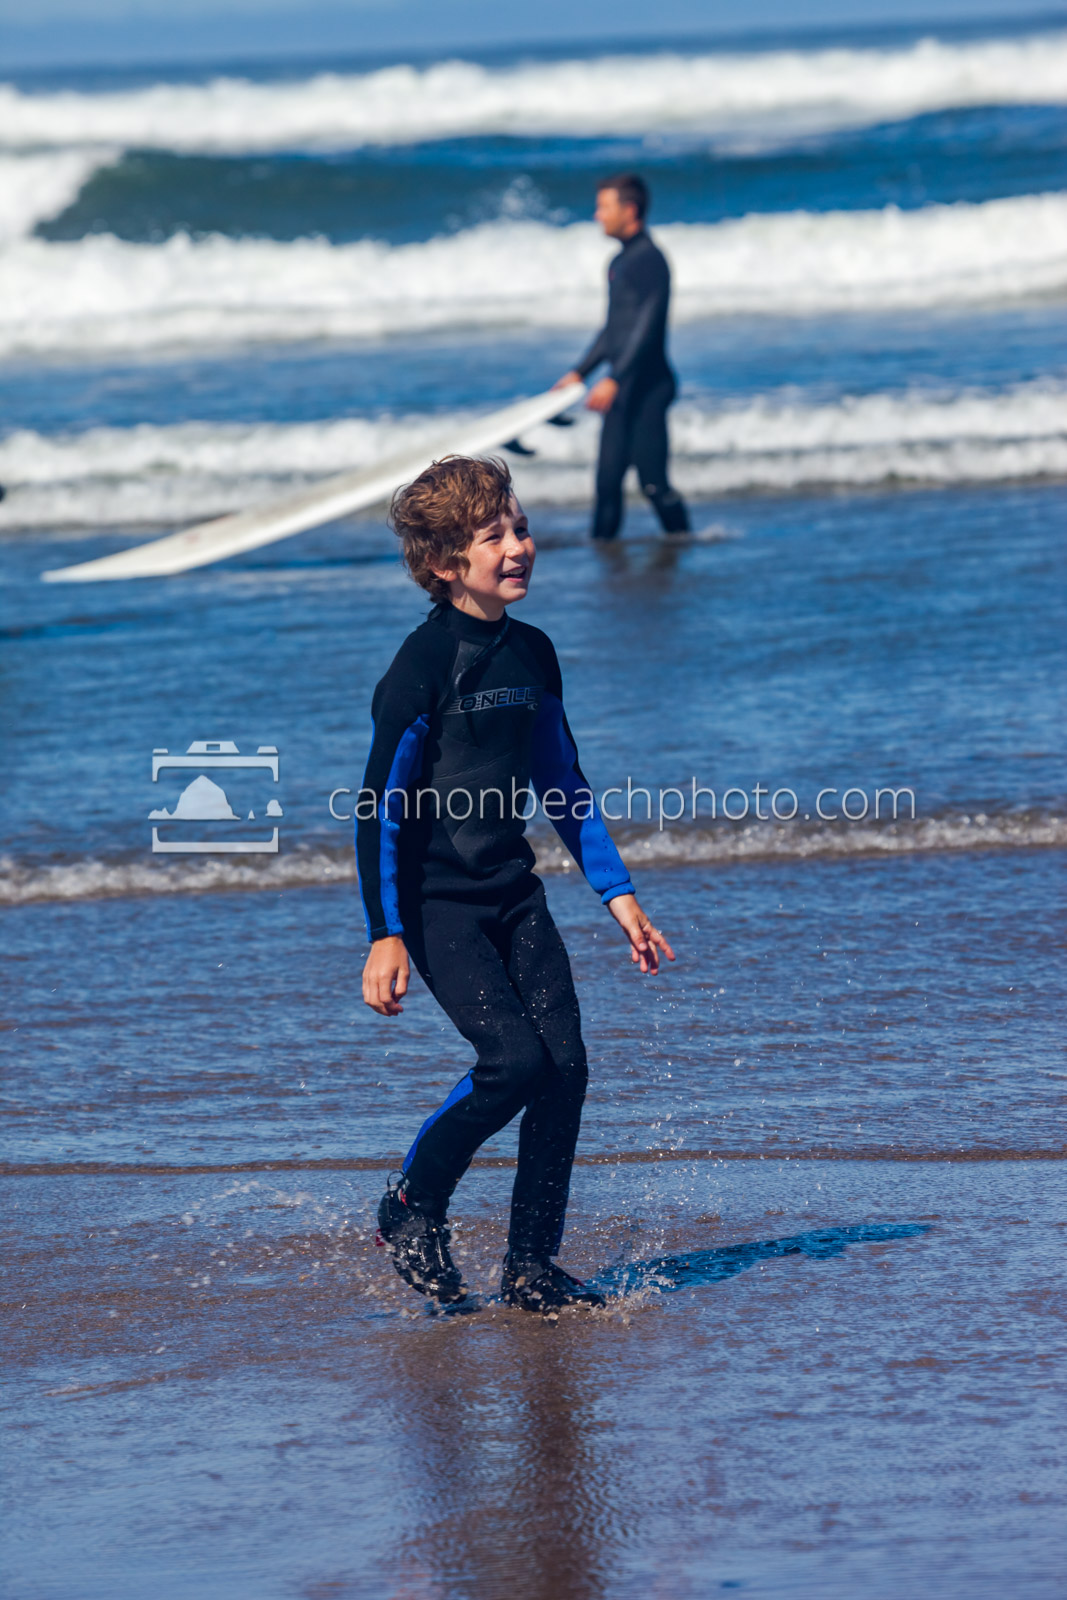 Grinning Kid, Surf Lessons